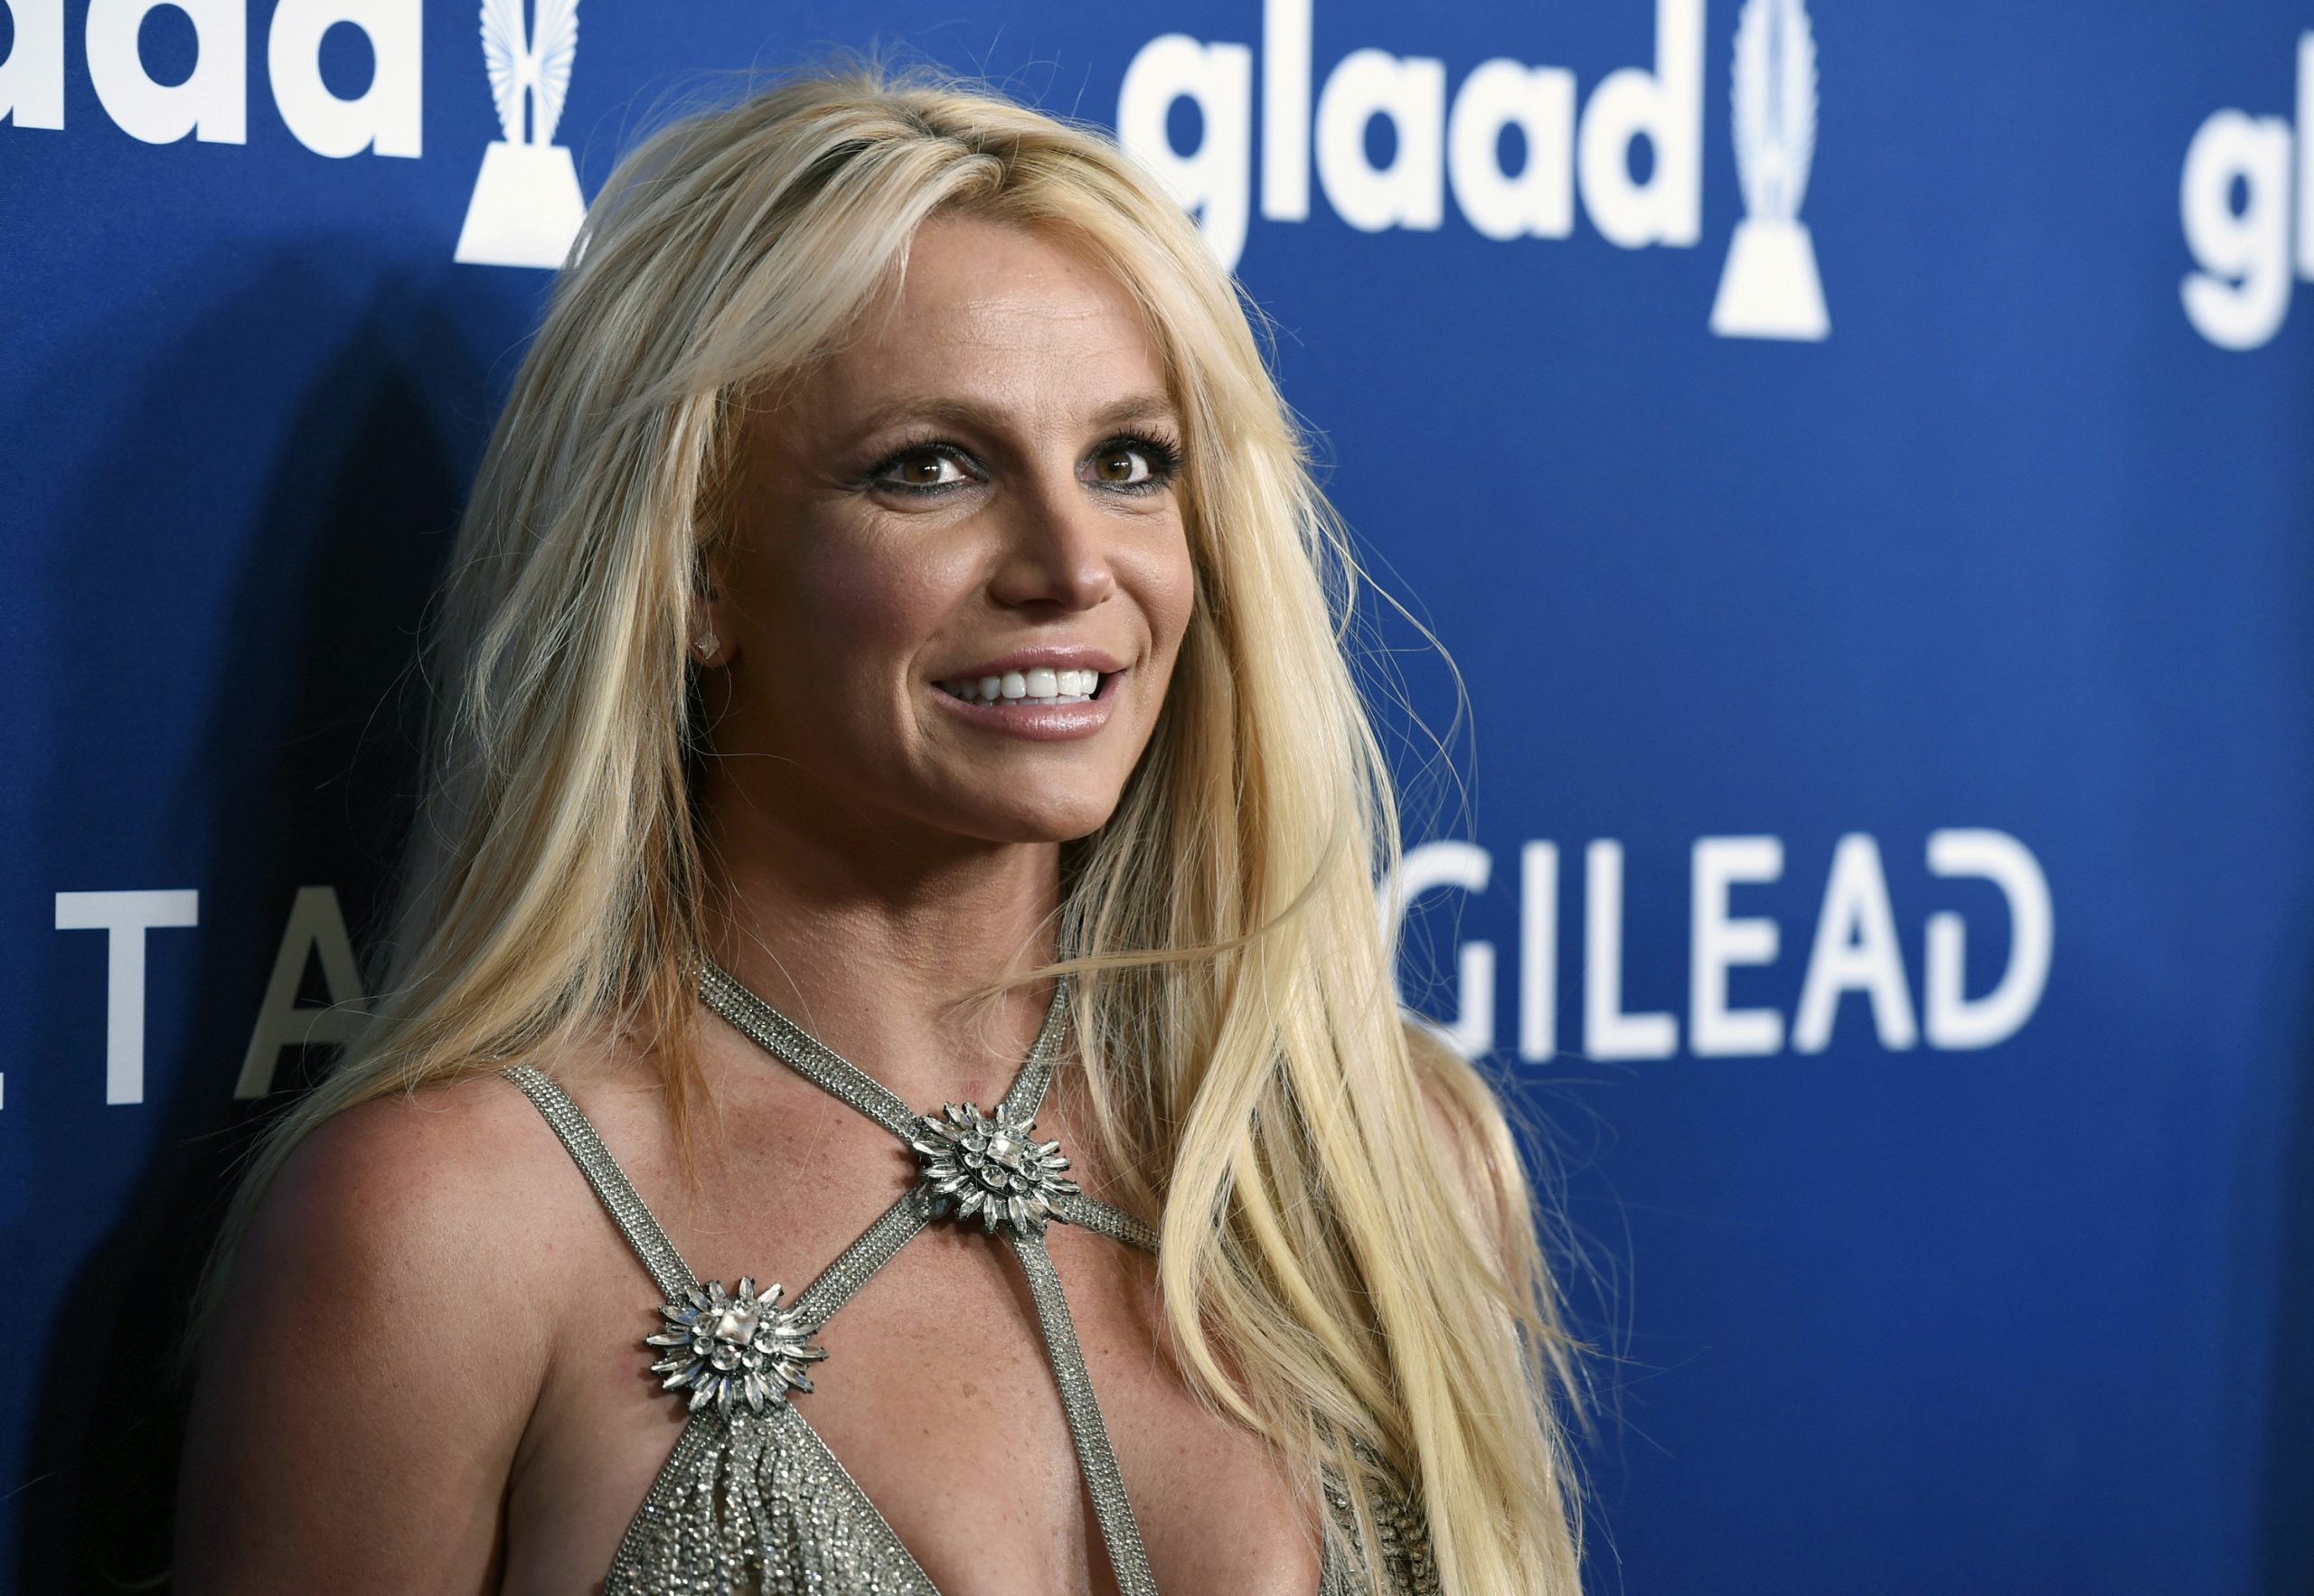 Frame a Britney Spears documentary on air conservation